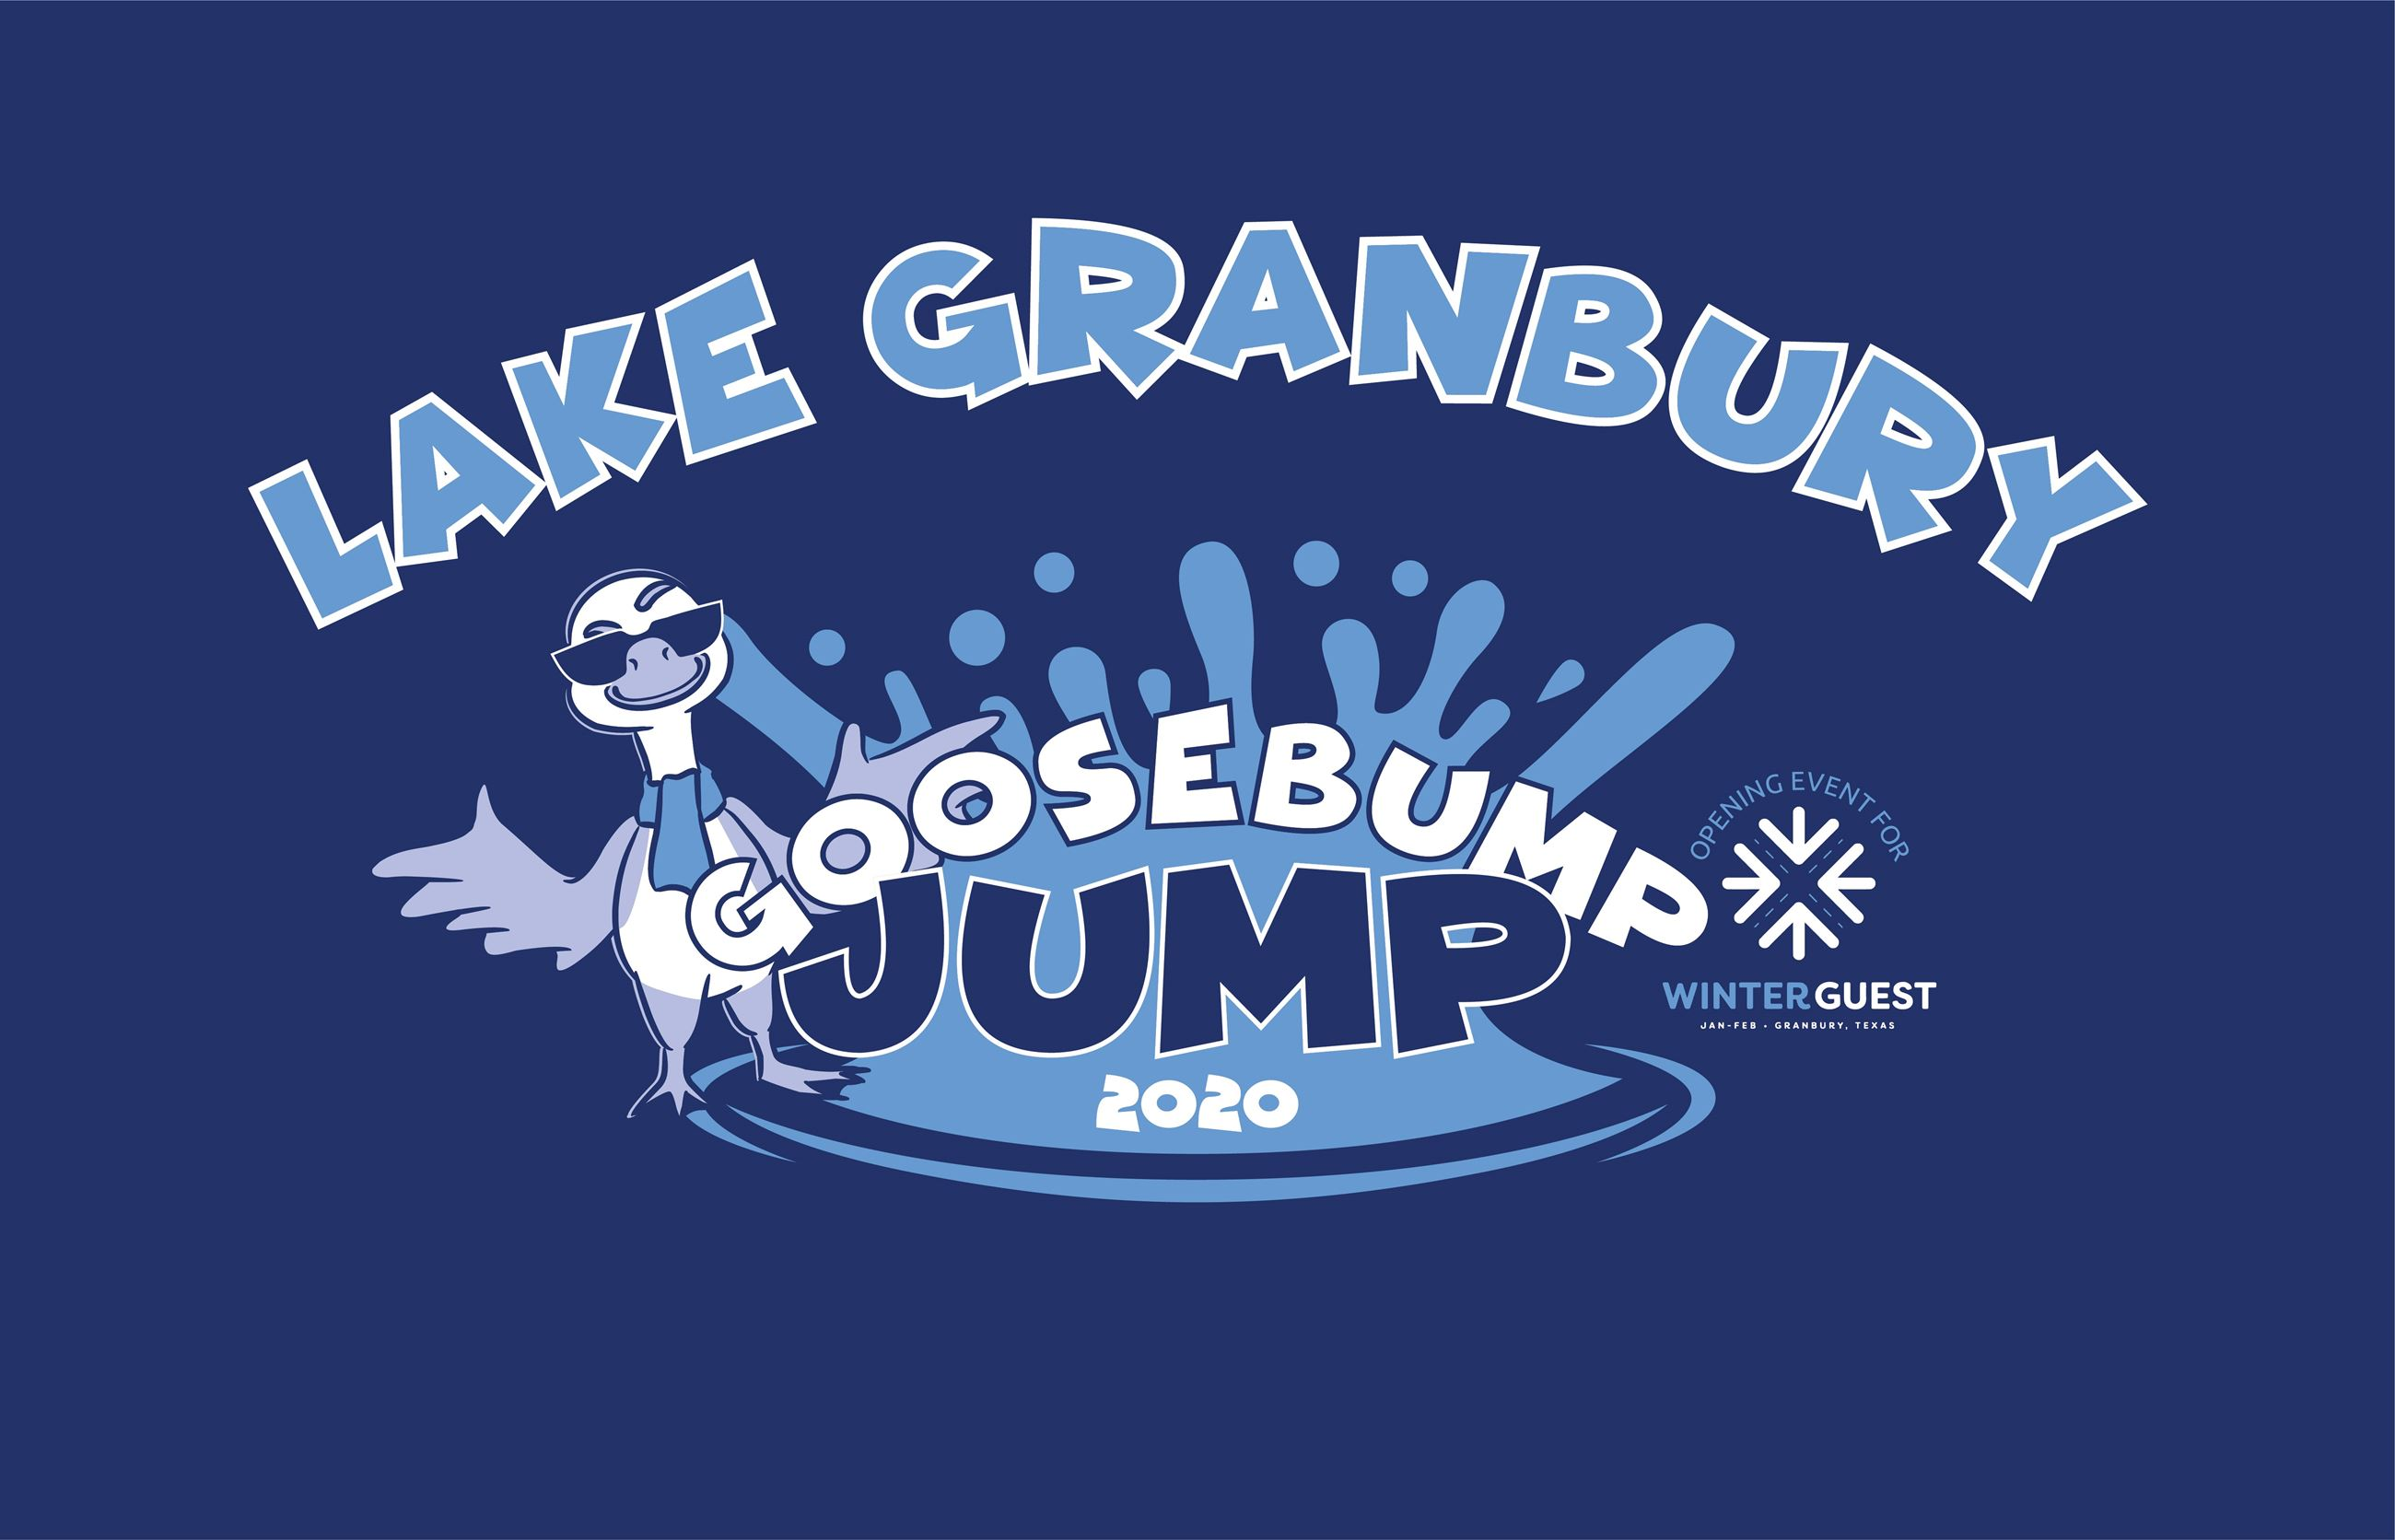 Goosebump Jump logo with winter guest blue